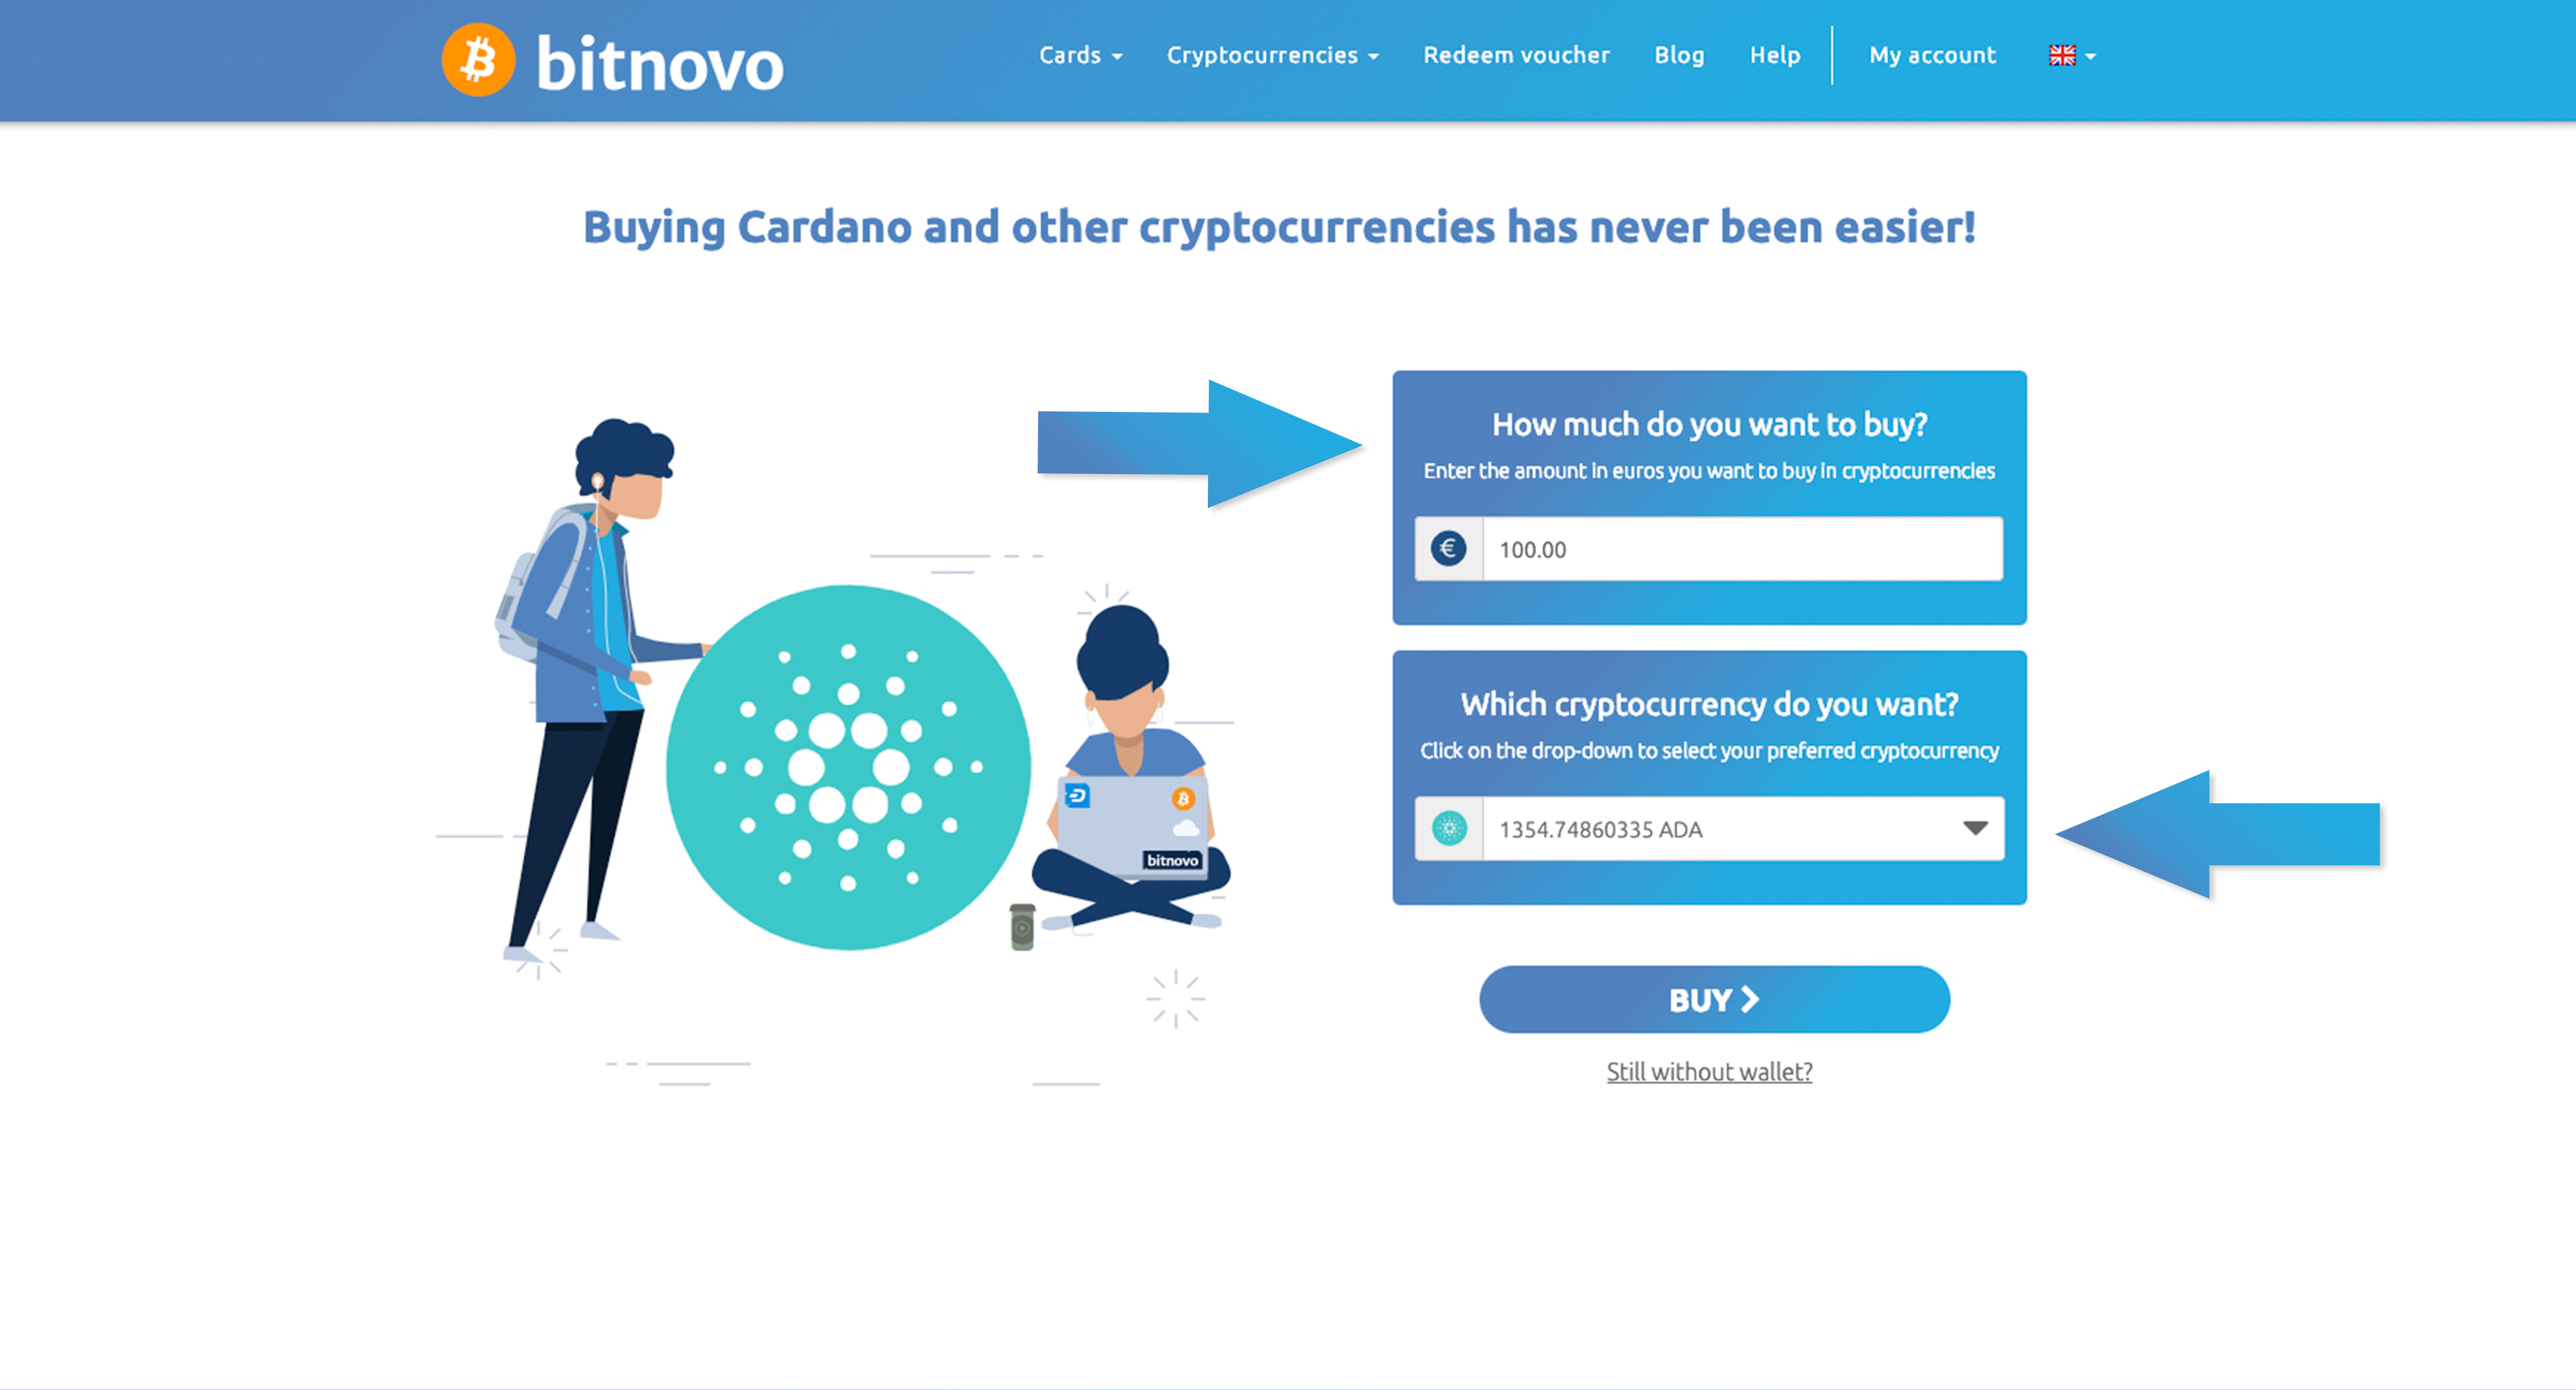 How many cardanos cryptocurrency are available to buy